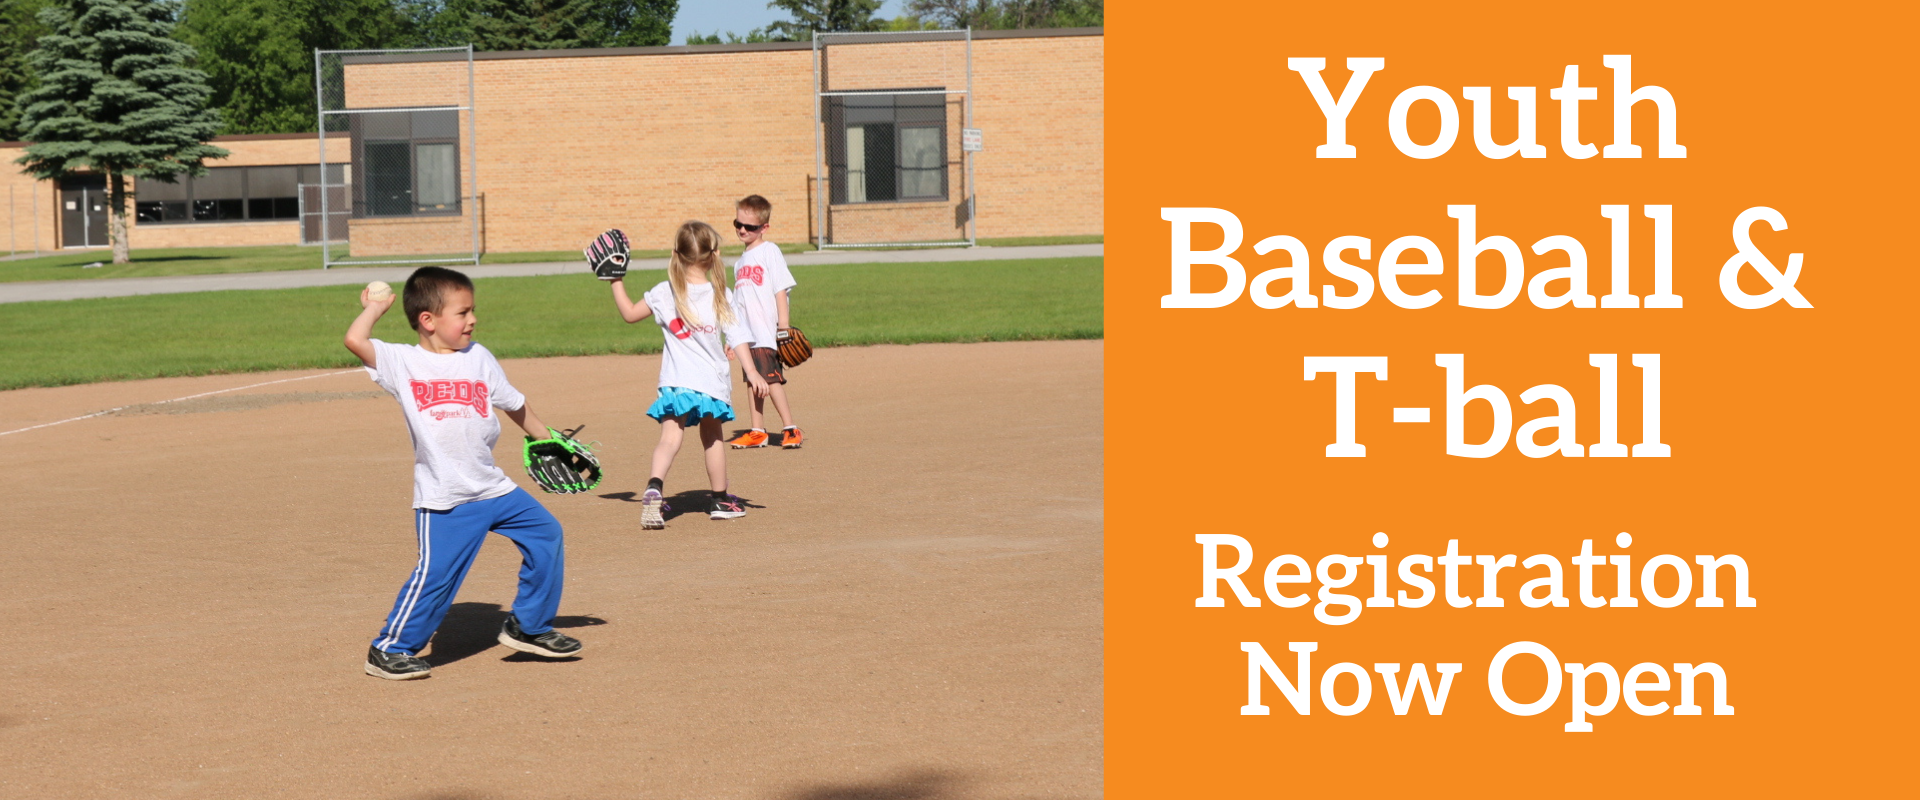 This graphic shows that Youth Baseball and T-ball registration is now open.